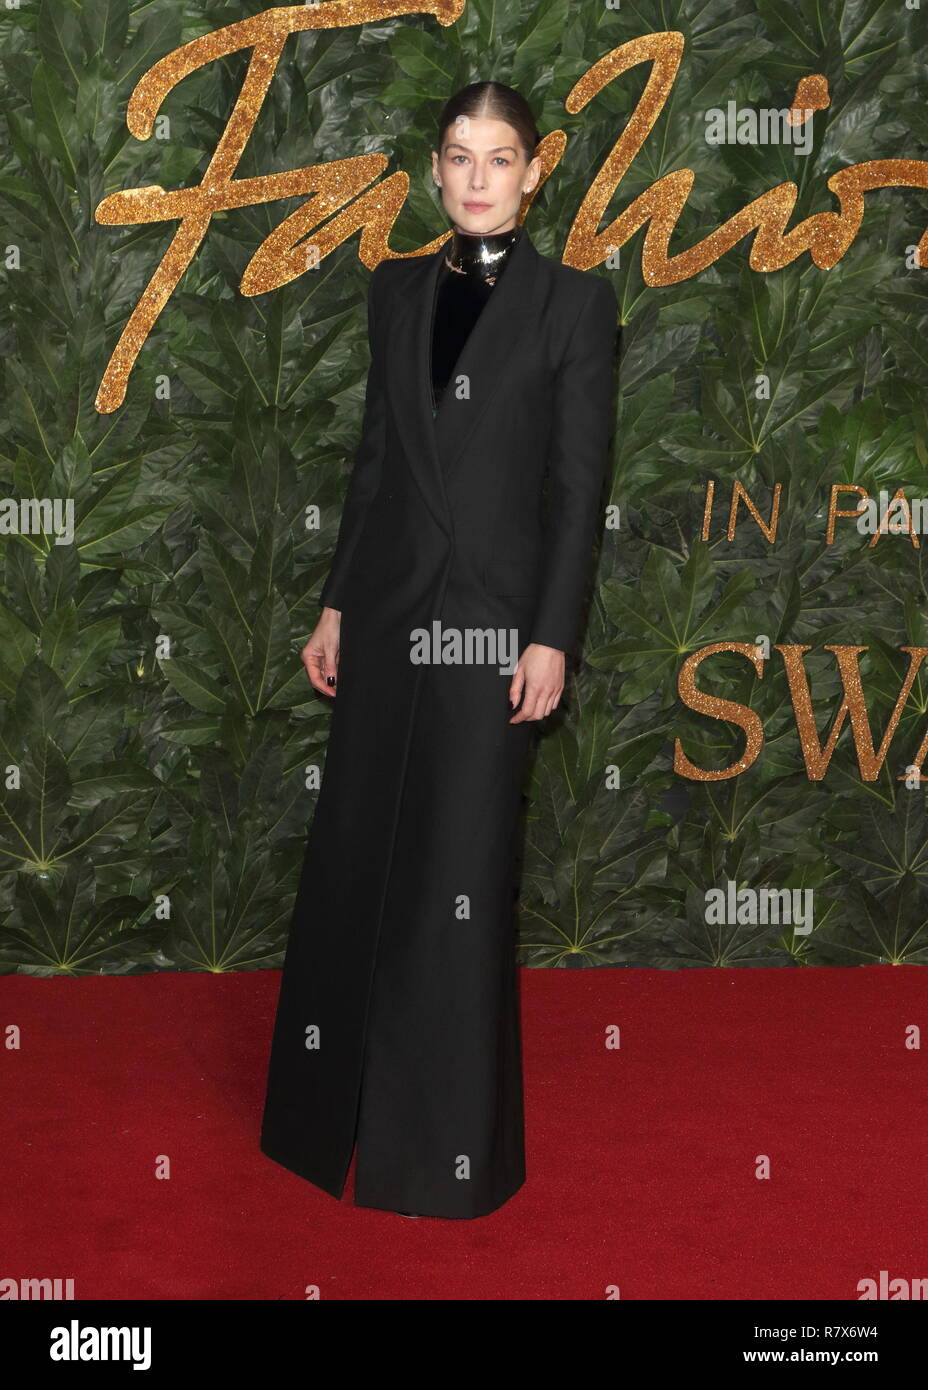 Rosamund Pike seen on the red carpet during the Fashion Awards 2018 at the Royal Albert Hall, Kensington in London. - Stock Image